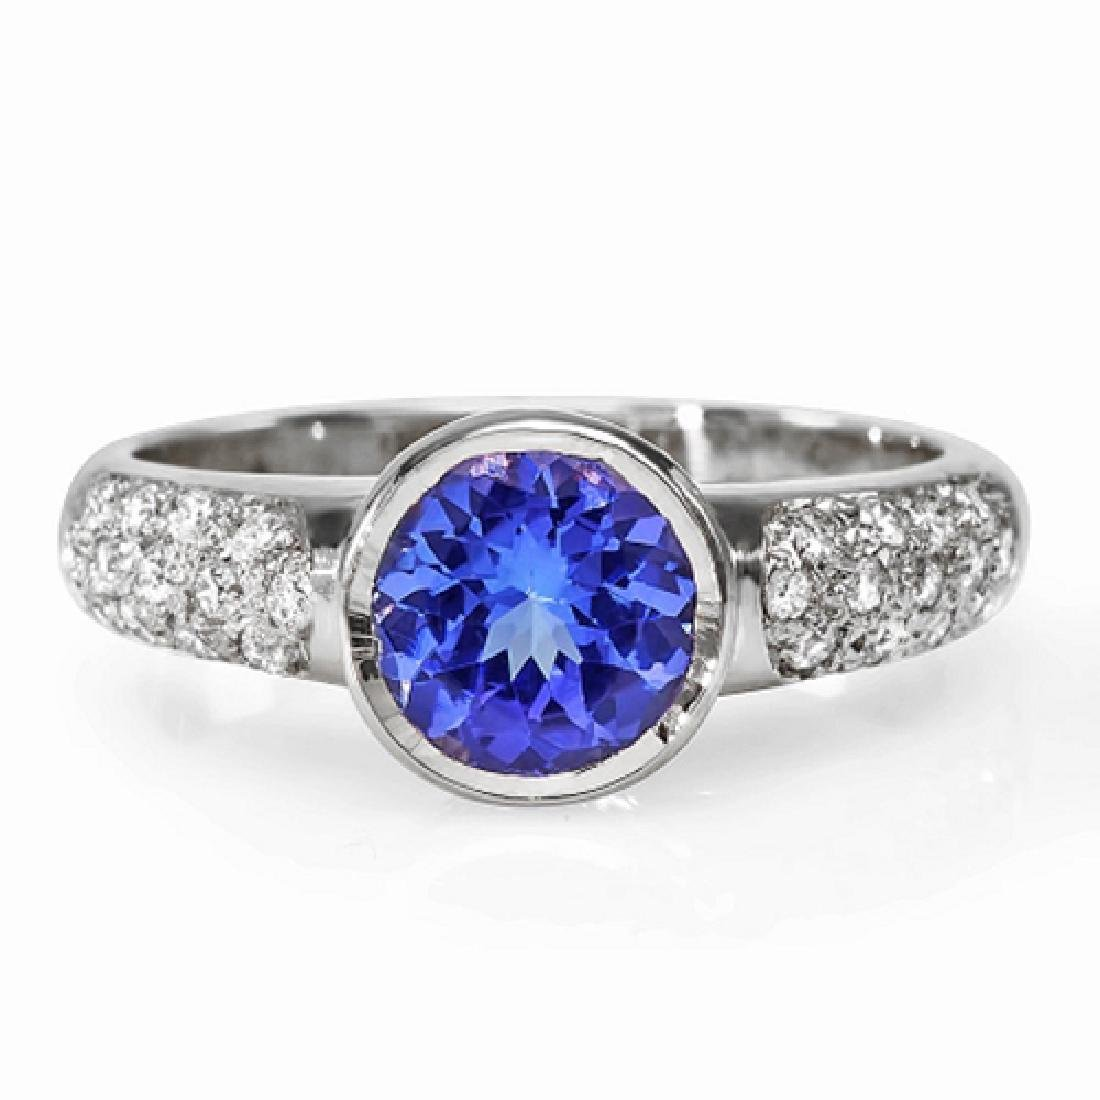 1.53 Carat Natural Tanzanite 18K Solid White Gold